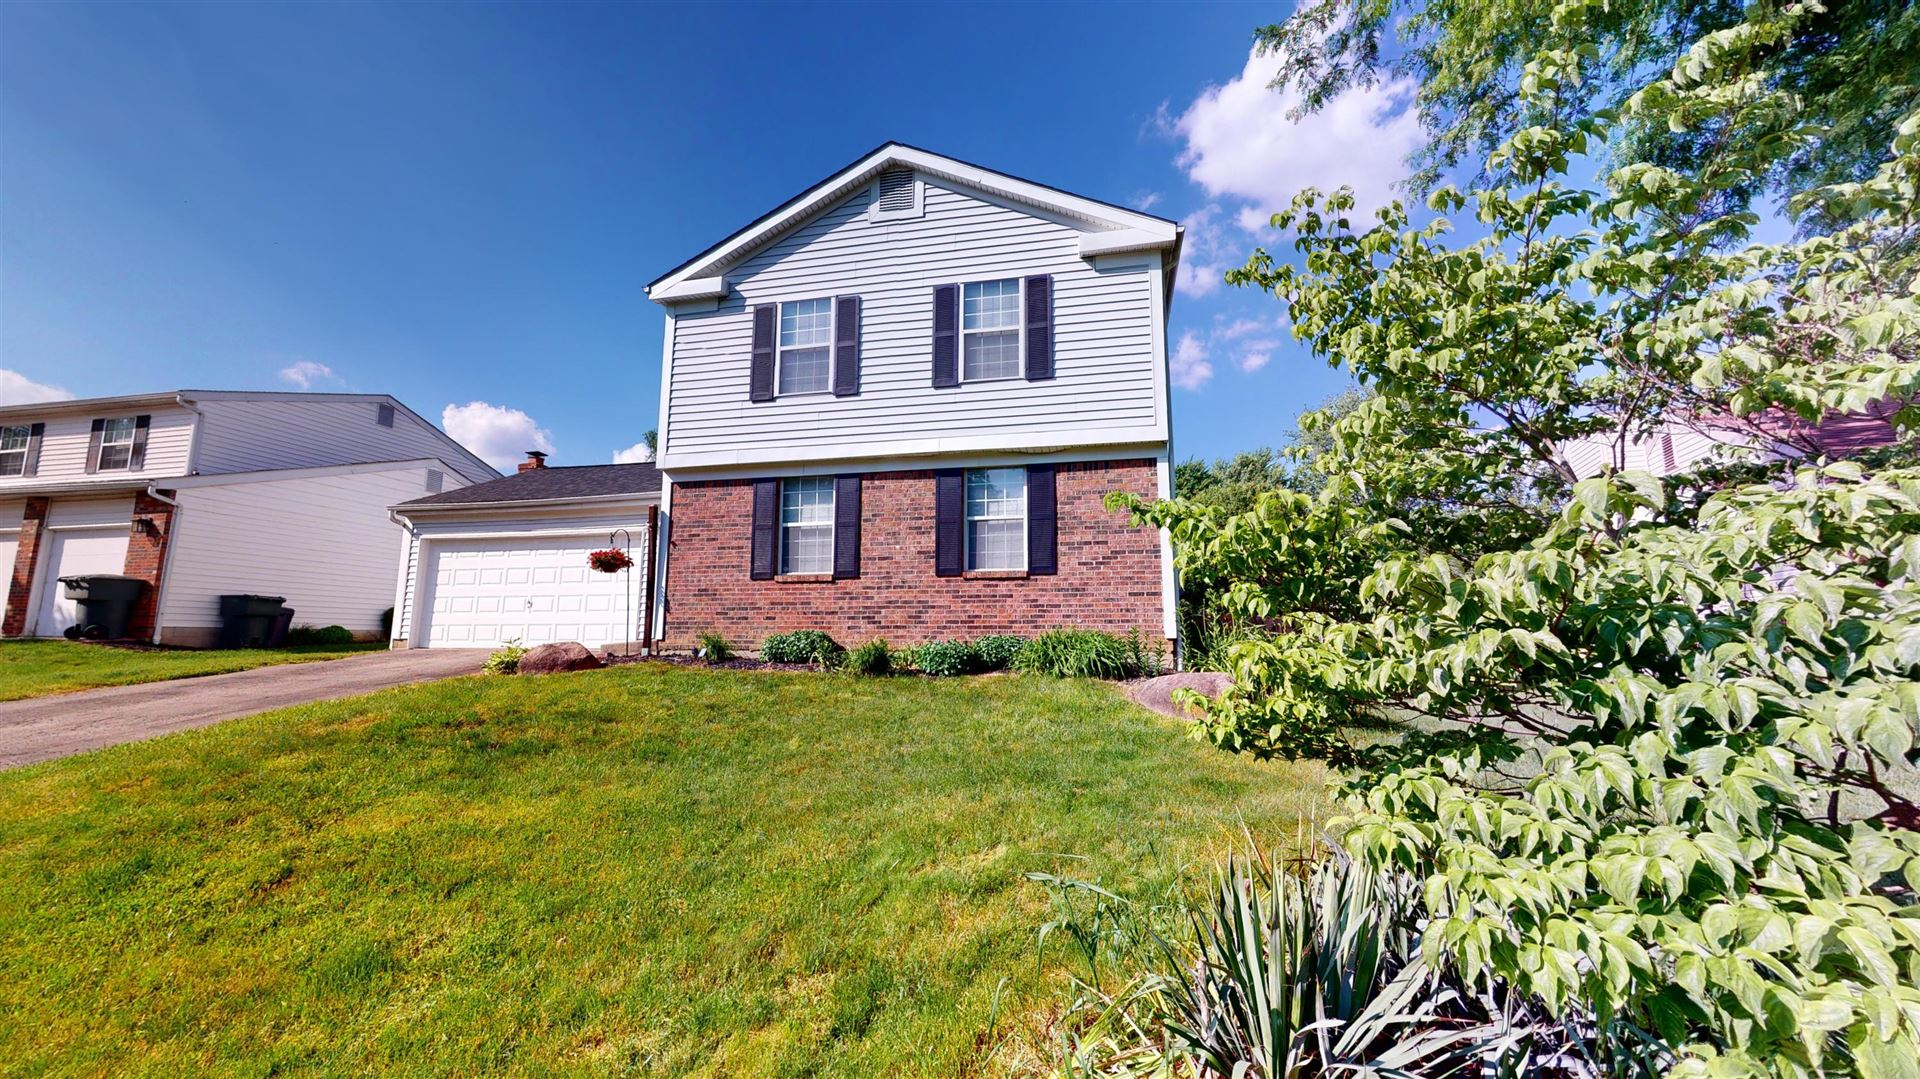 Photo of 1768 Plains Boulevard, Powell, OH 43065 (MLS # 221029289)